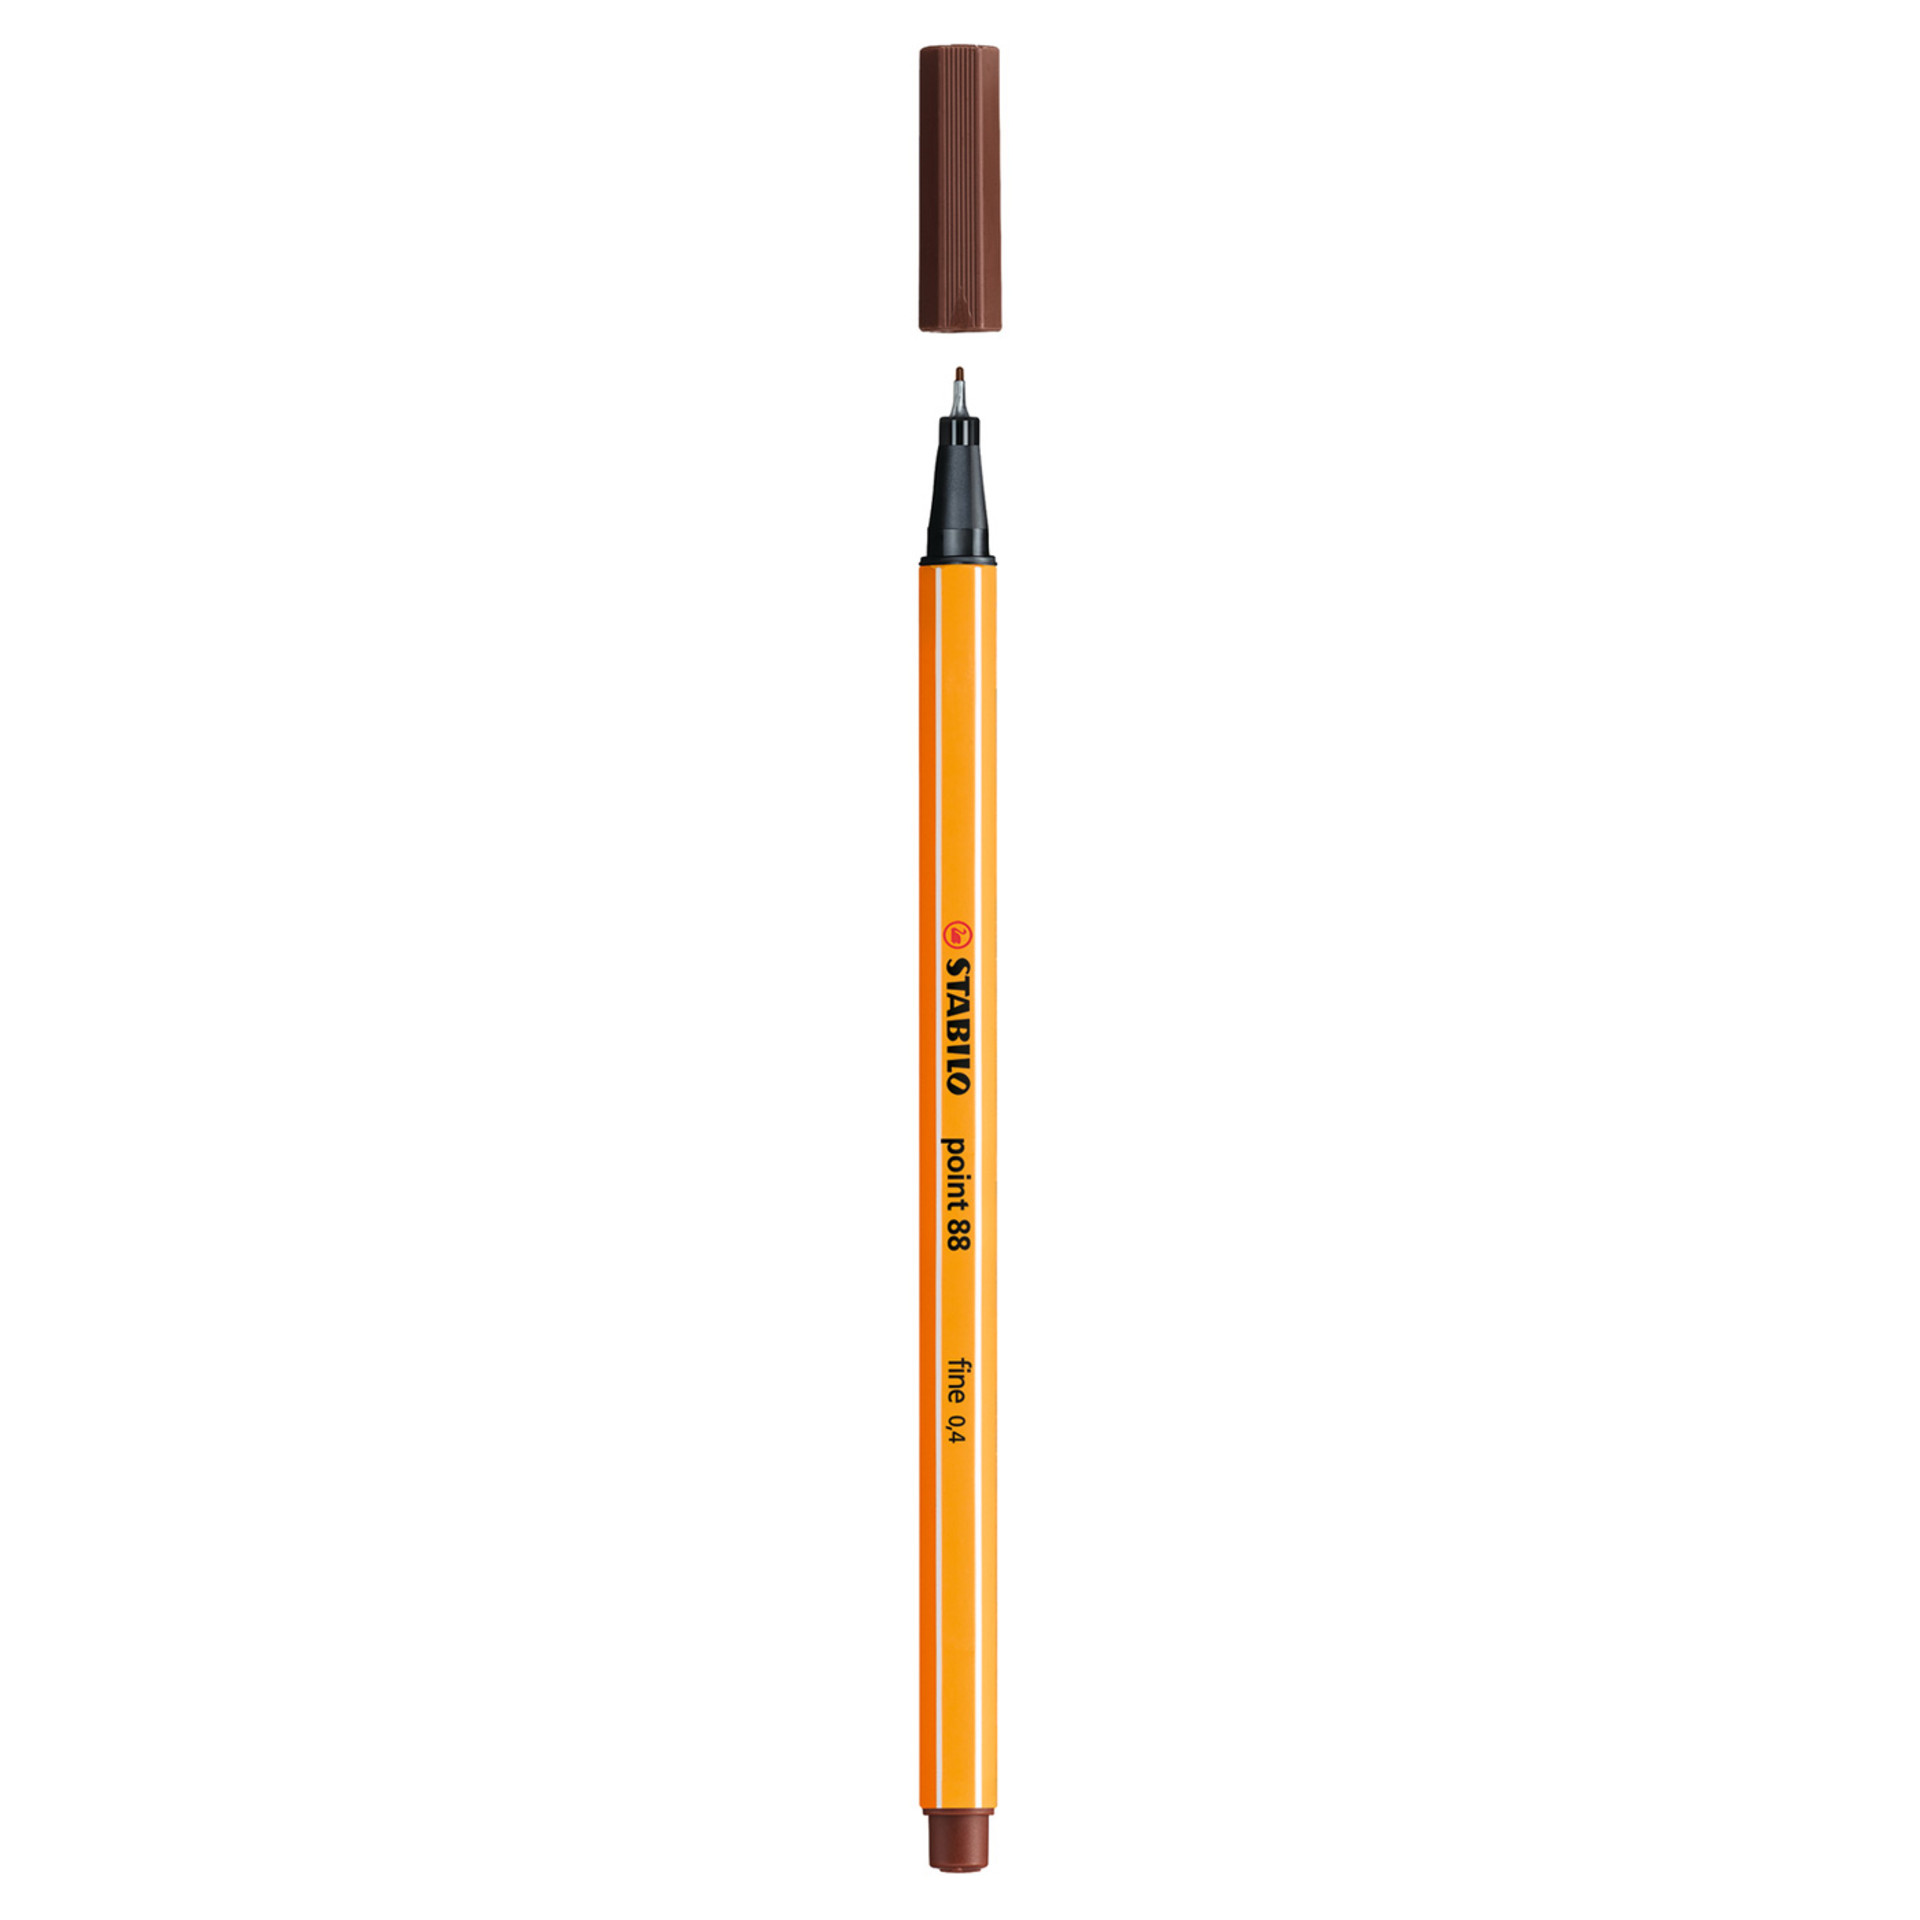 Stabilo Point 88 .4mm Fineliner Pen – Brown